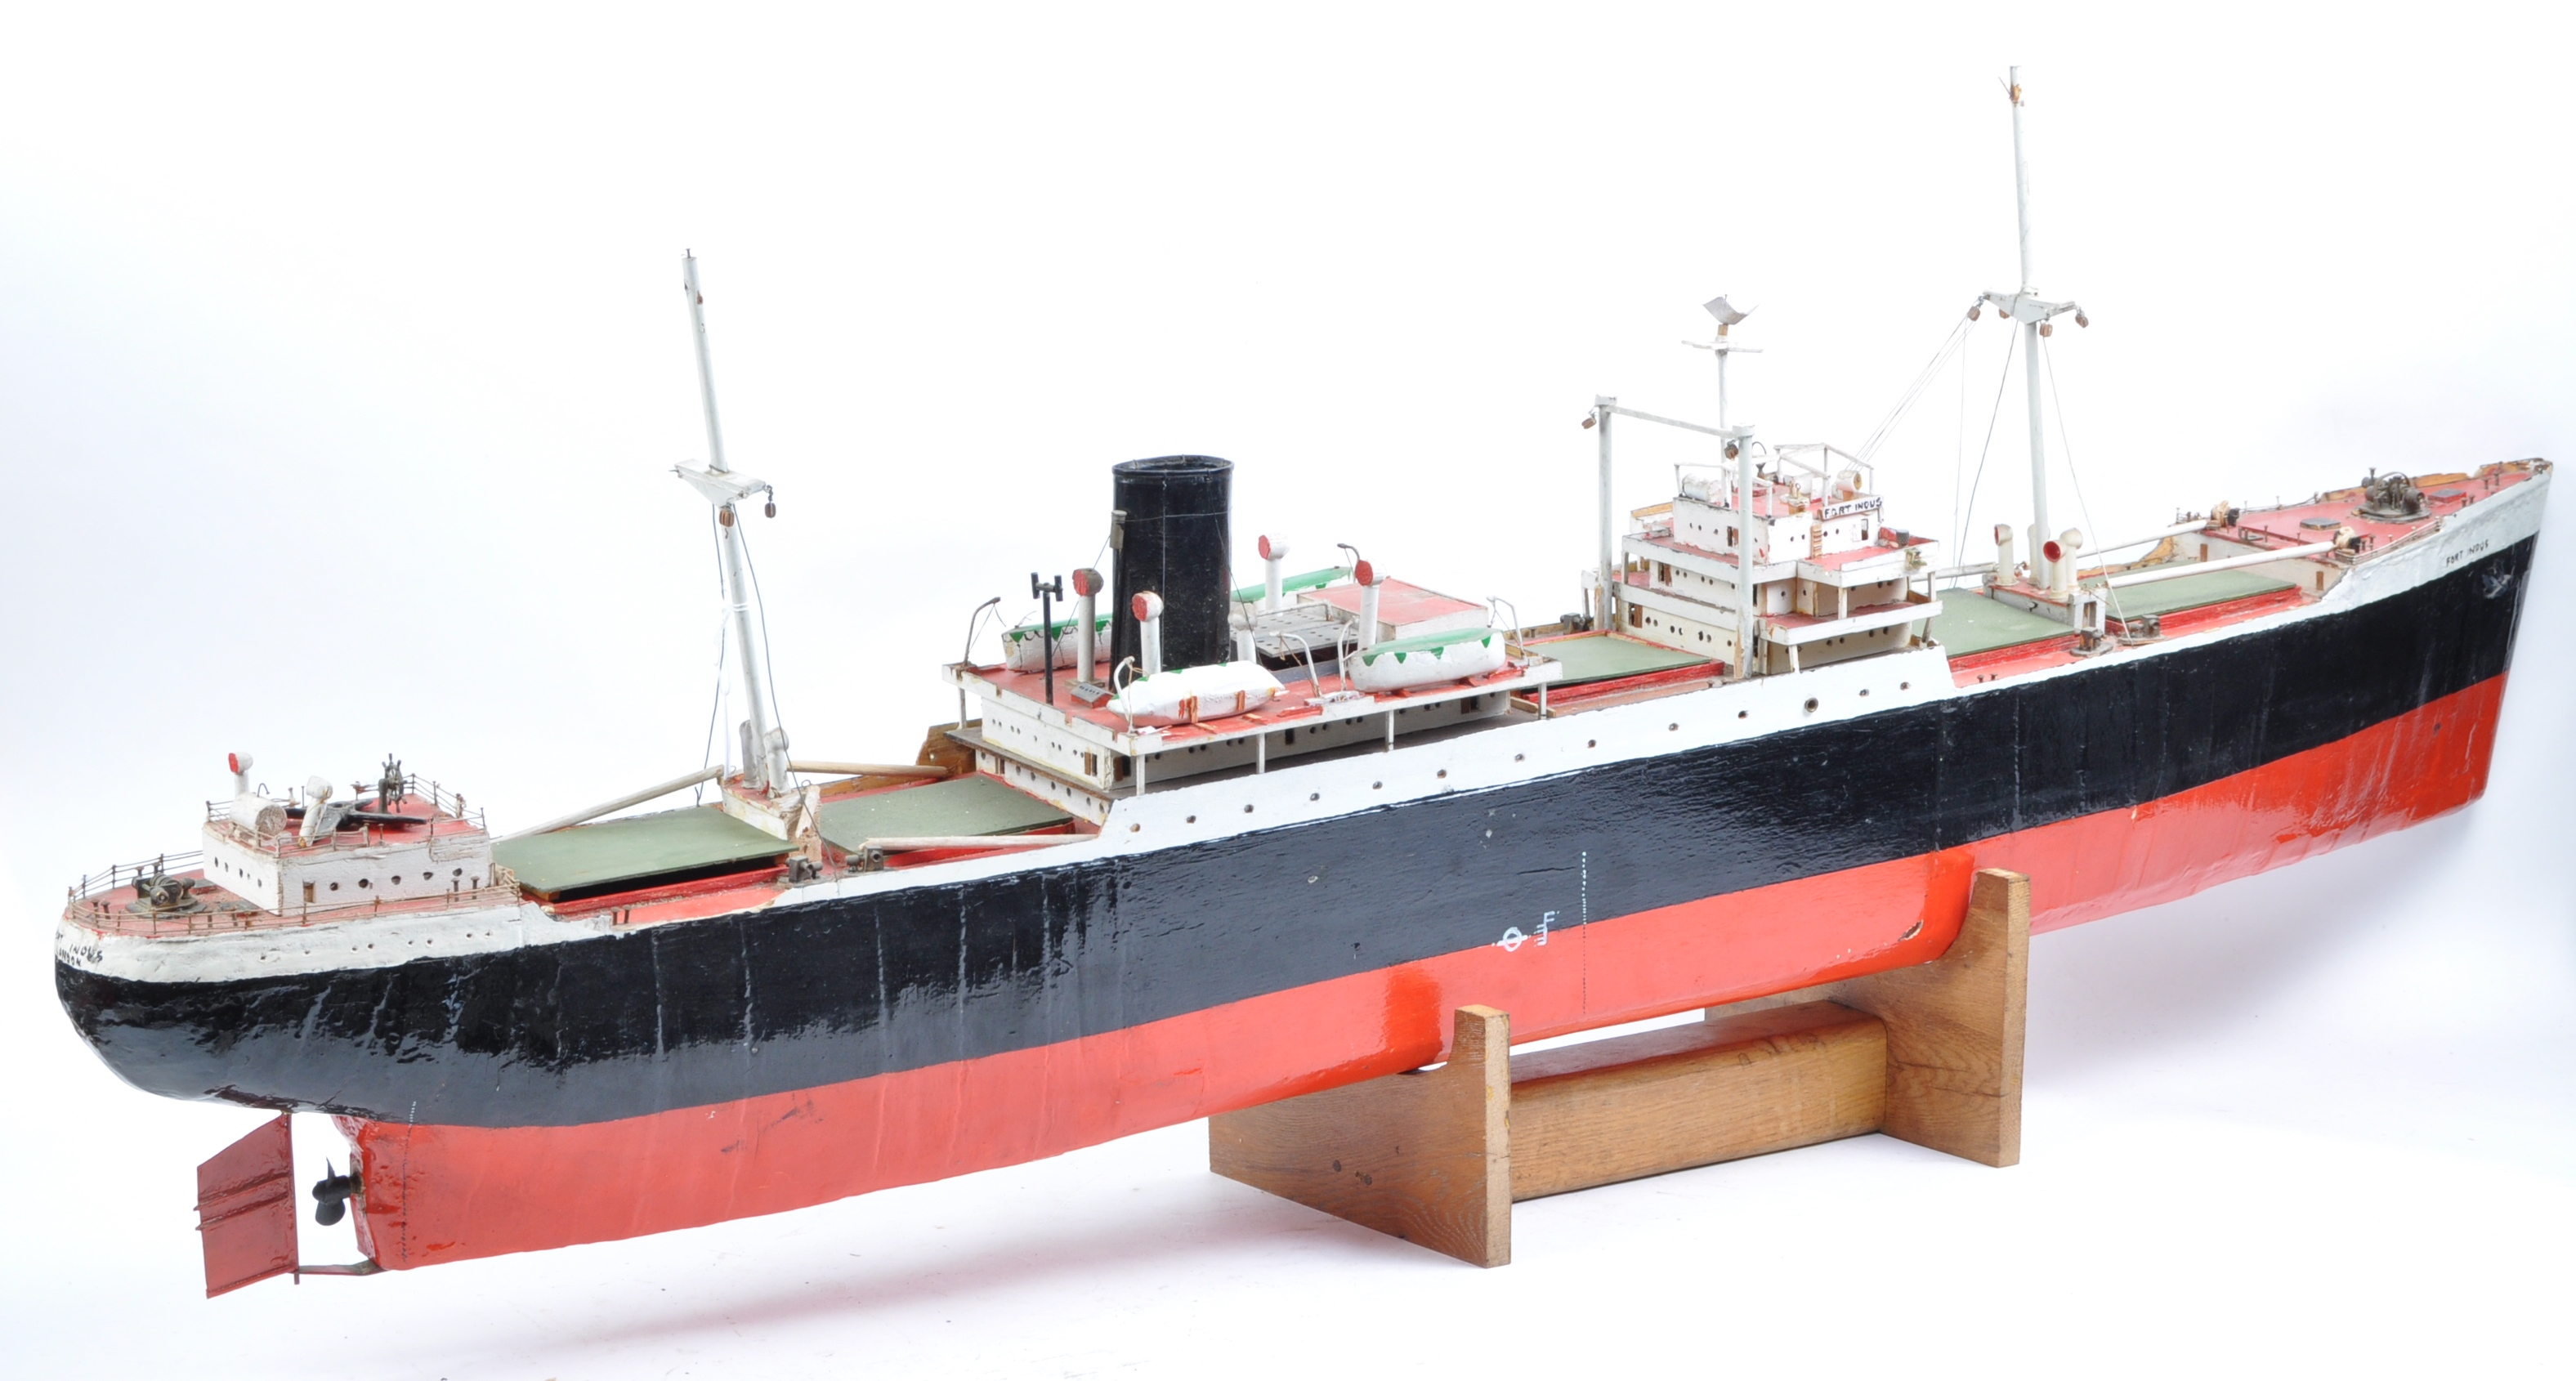 SHIPPING - RADIO CONTROLLED SCALE MODEL ' FORT INDUS ' CARGO SHIP - Image 10 of 11